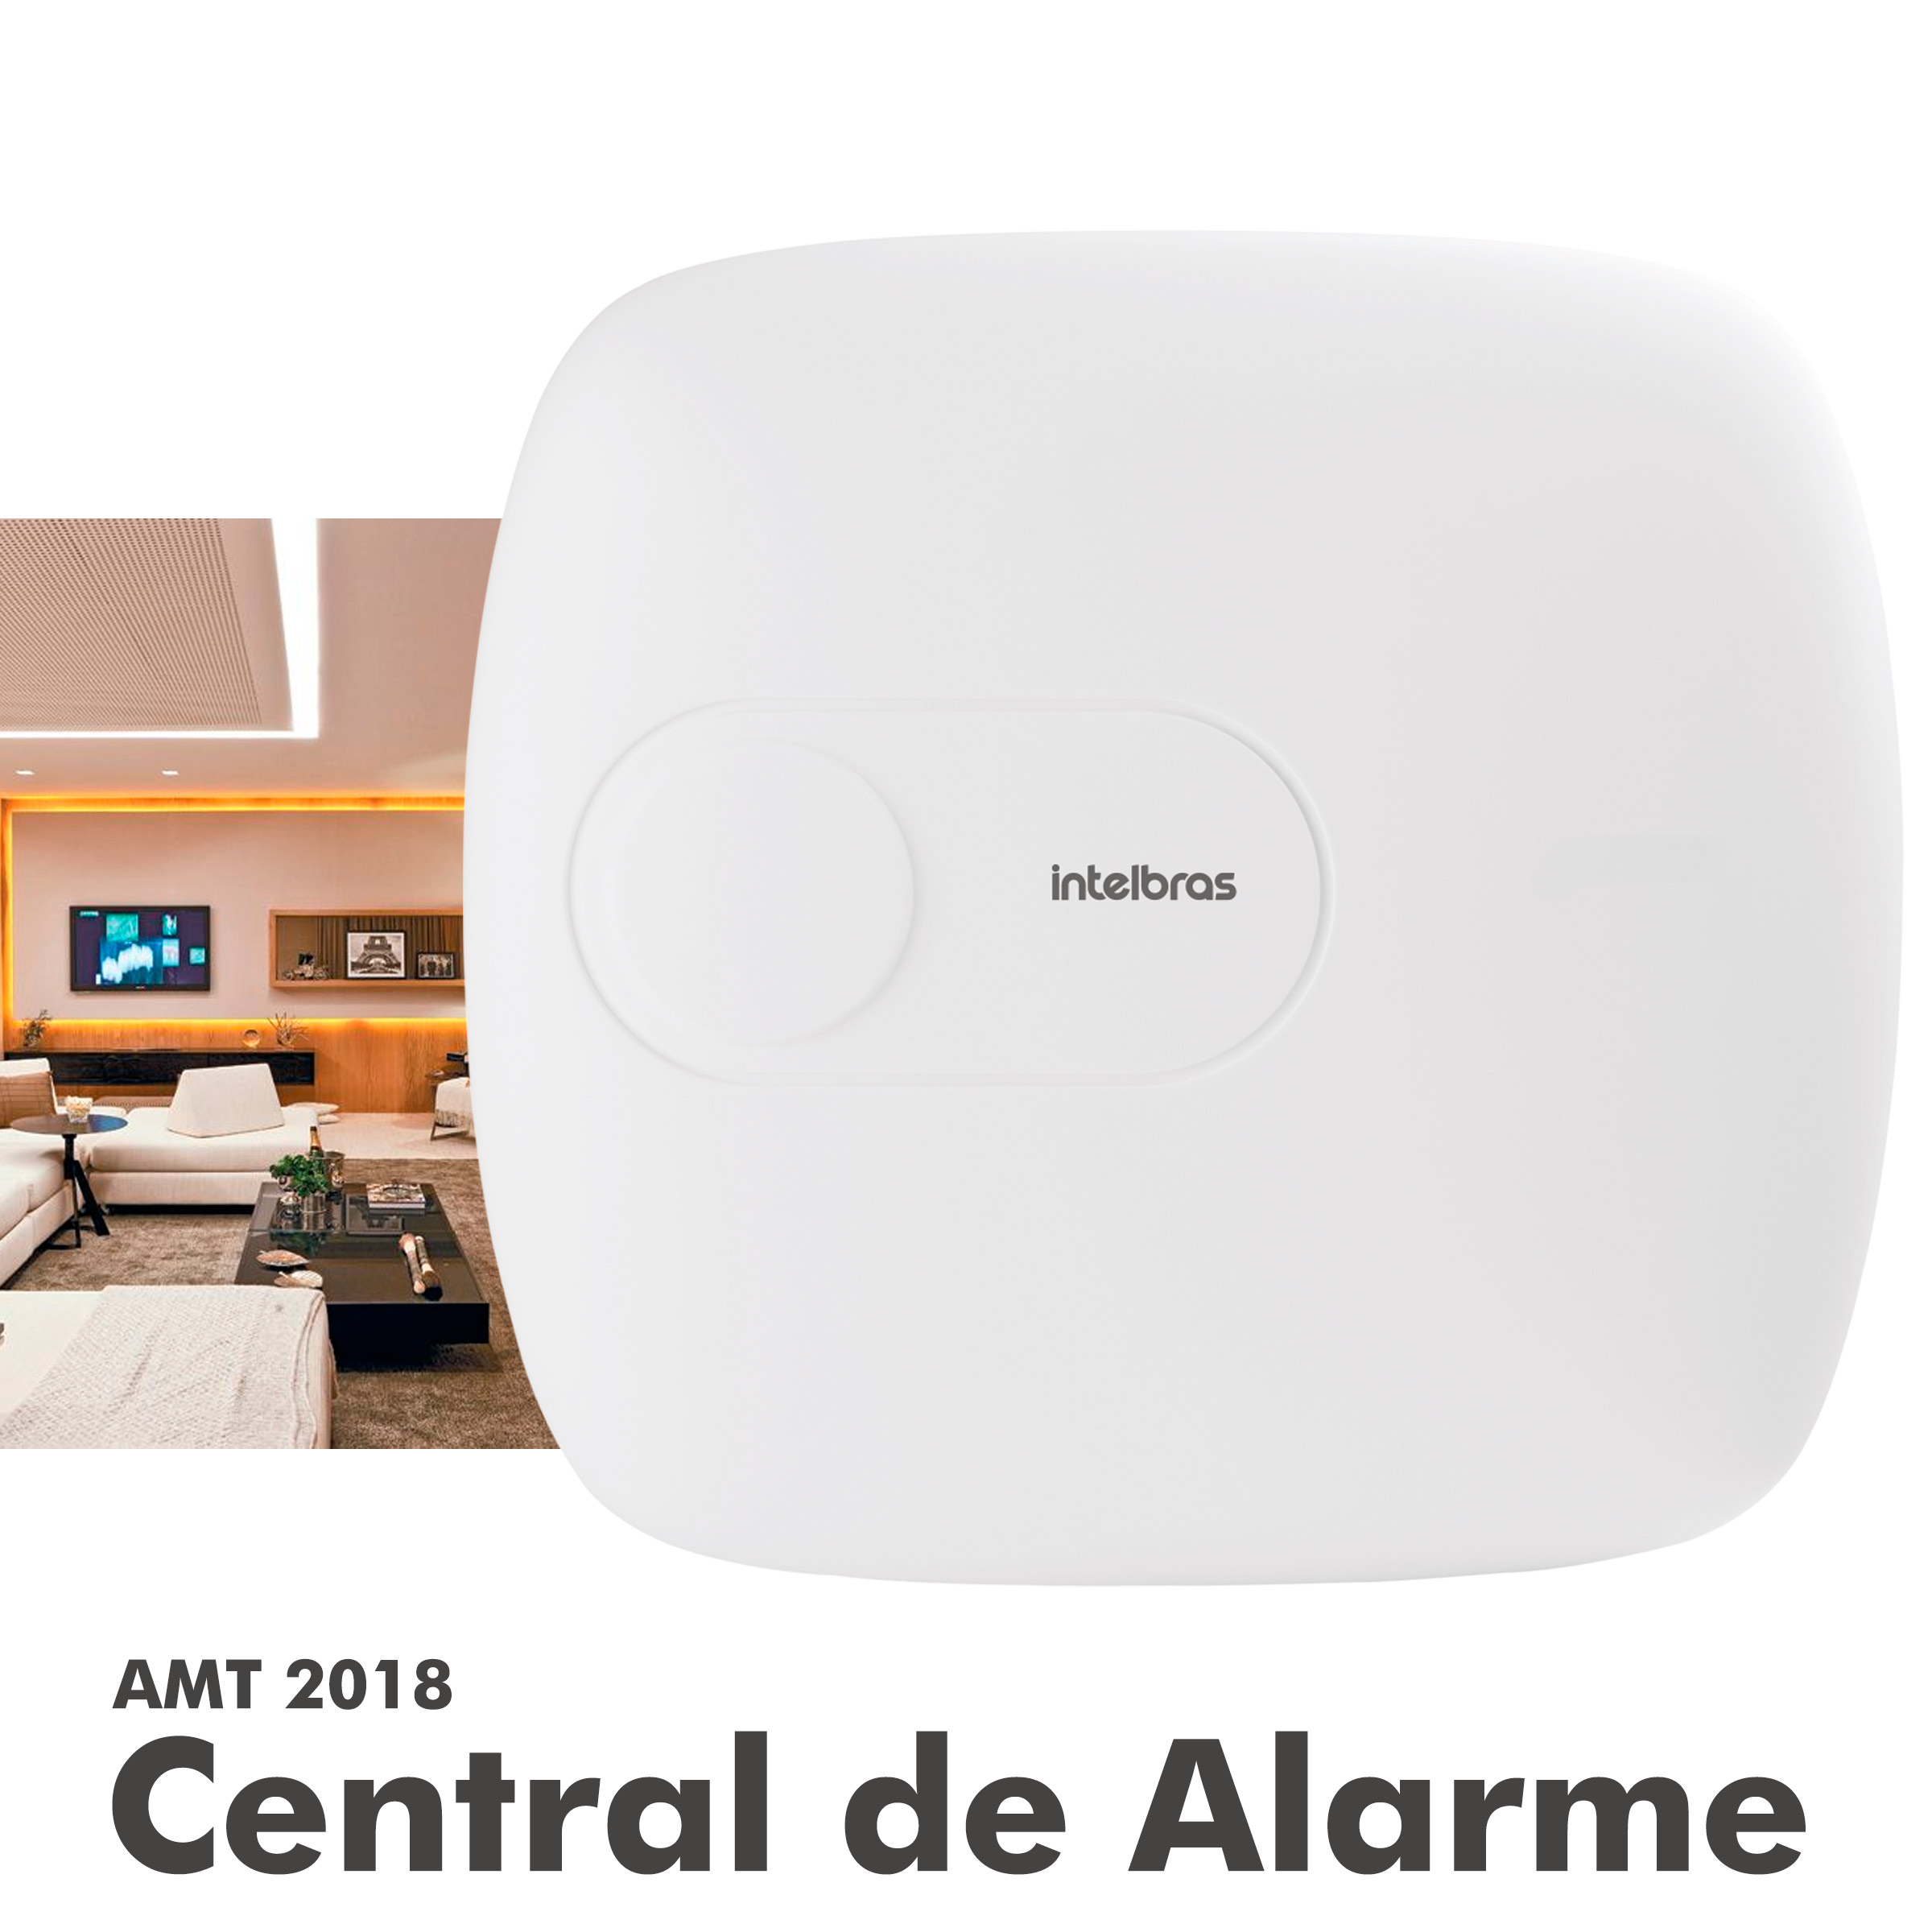 alarme-kit1016net-amt